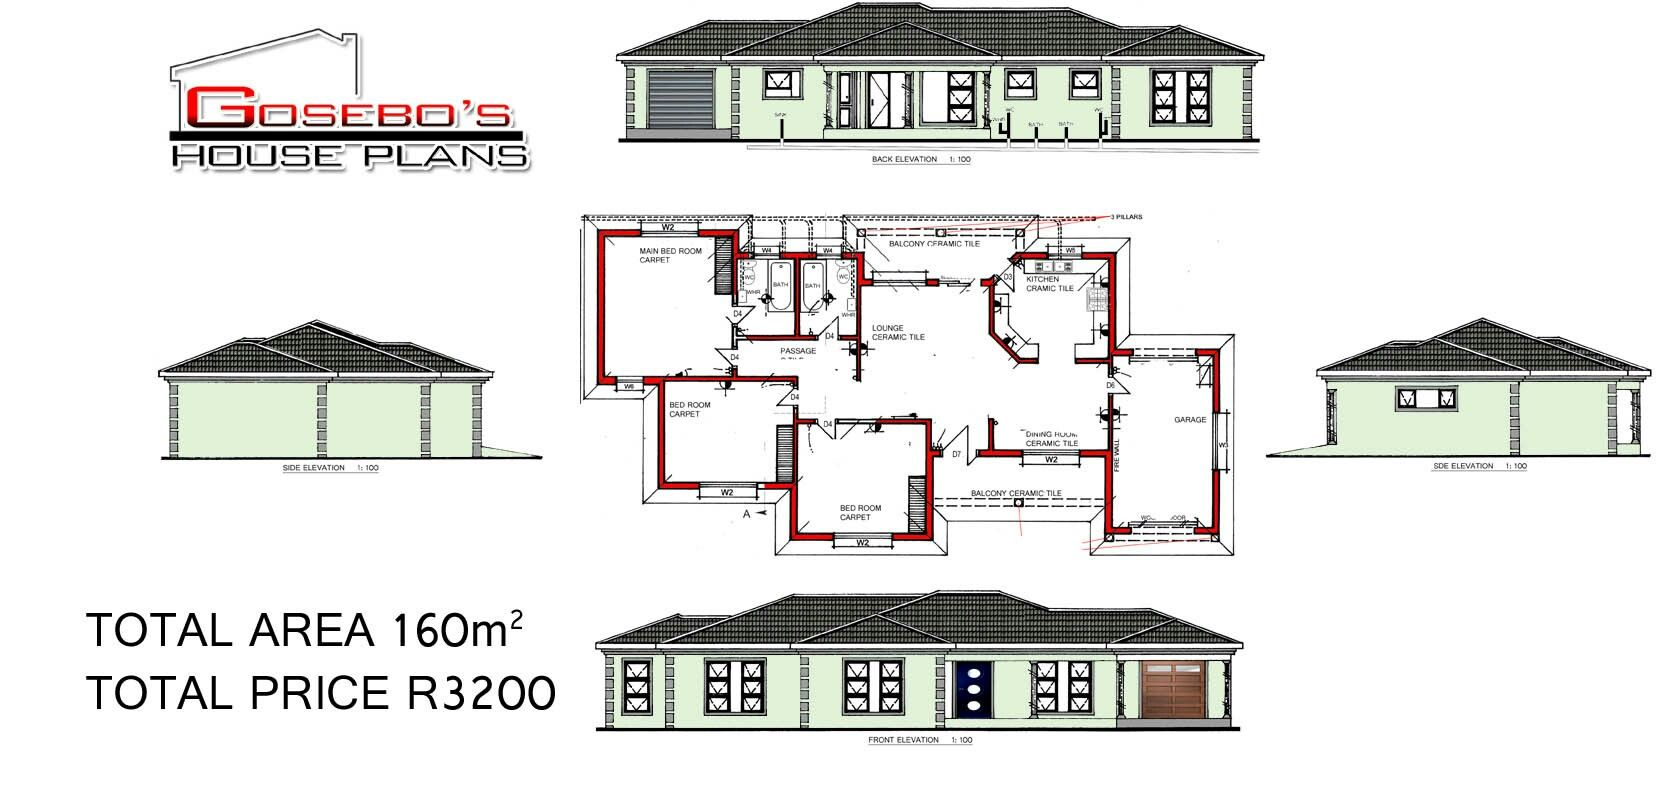 Pin by Gosebo House Plans on Gosebo House Plans in 2019 ... House Plans For Sale In Lebowakgomo on house plans bedroom, house plans software, house plans books, house plans forum, house plans international, house plans storage, house plans money, house plans floor plans, house plans art, house plans with carports, house plans dogs, house plans projects, house plans house, house plans construction, house plans community, house plans bathroom, house plans apartments, house plans commercial,